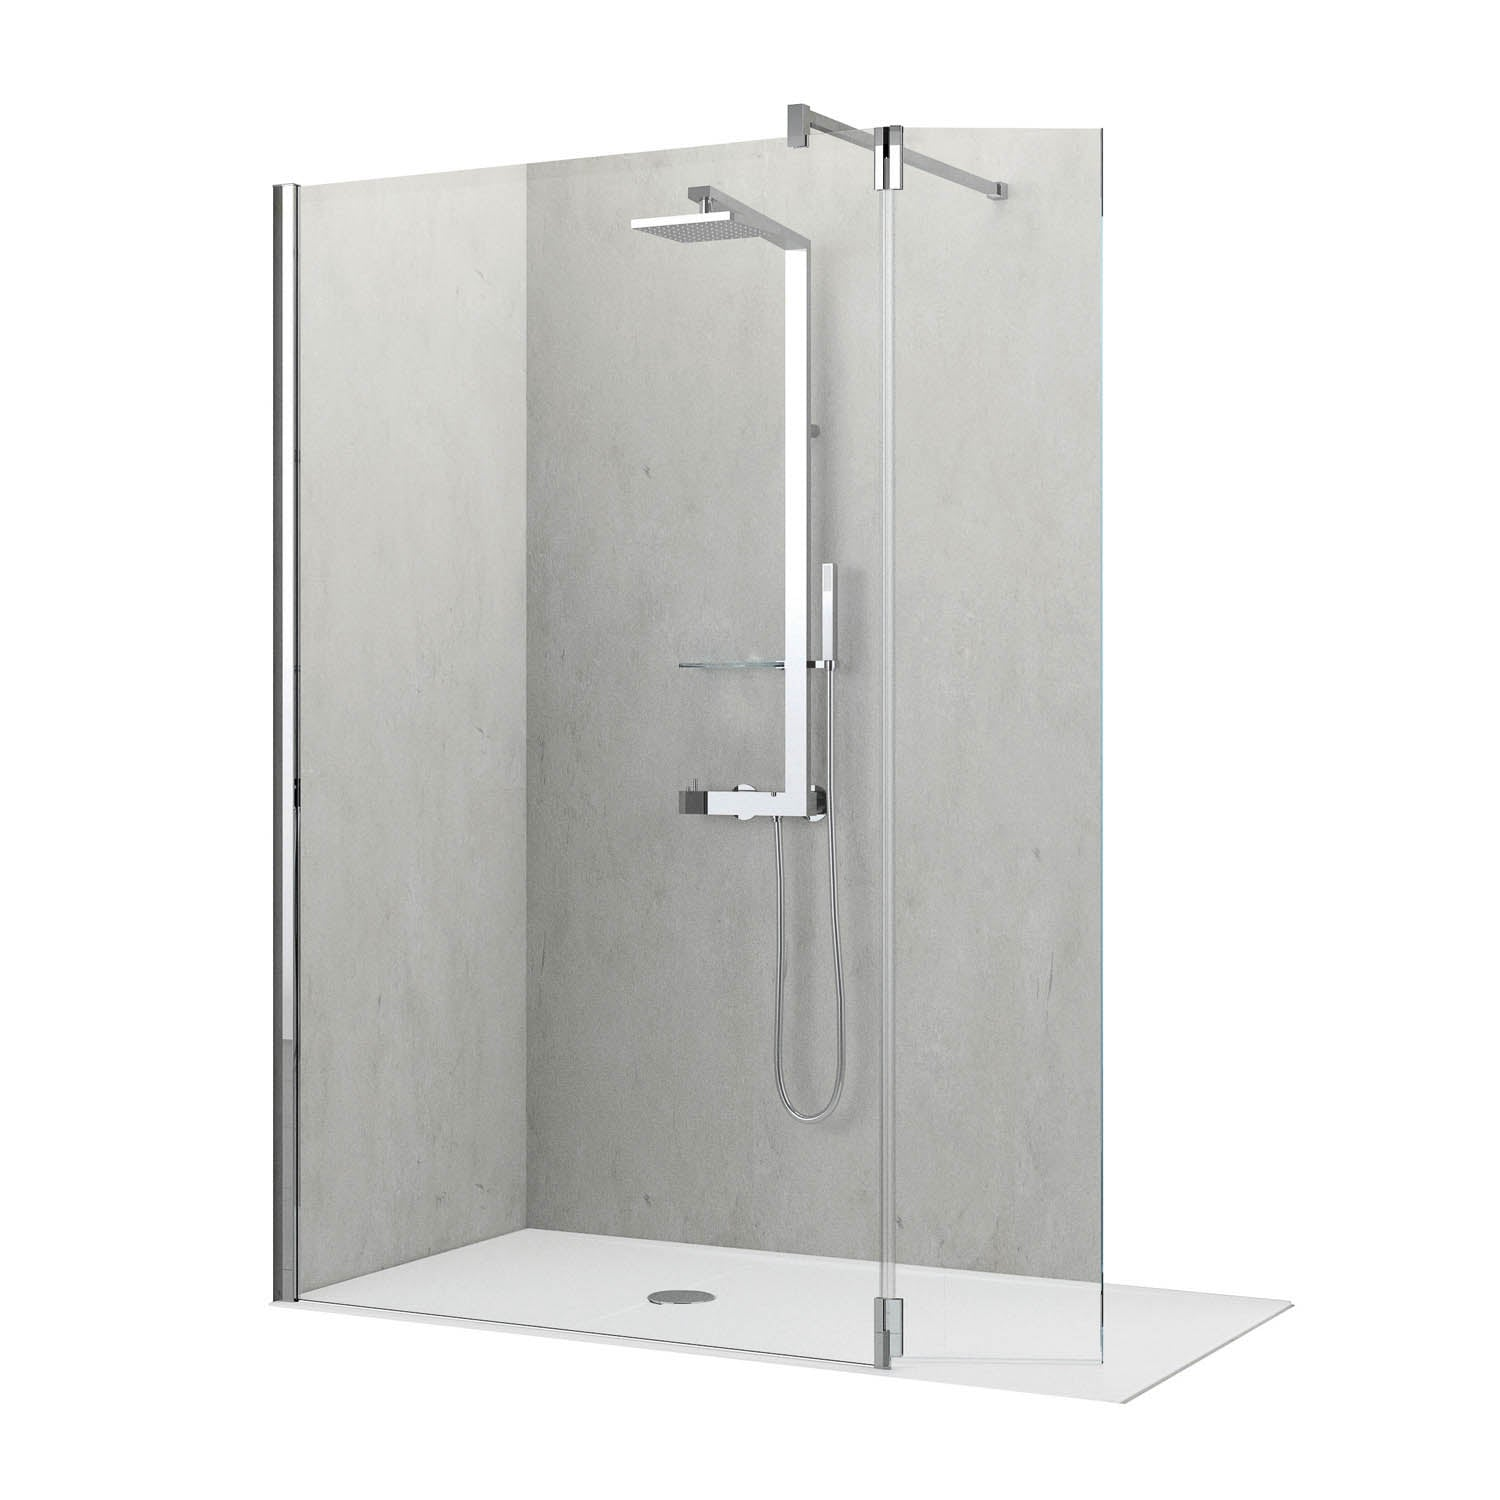 870-900mm Ergo Wet Room Screen Clear Glass with a chrome finish on a white background